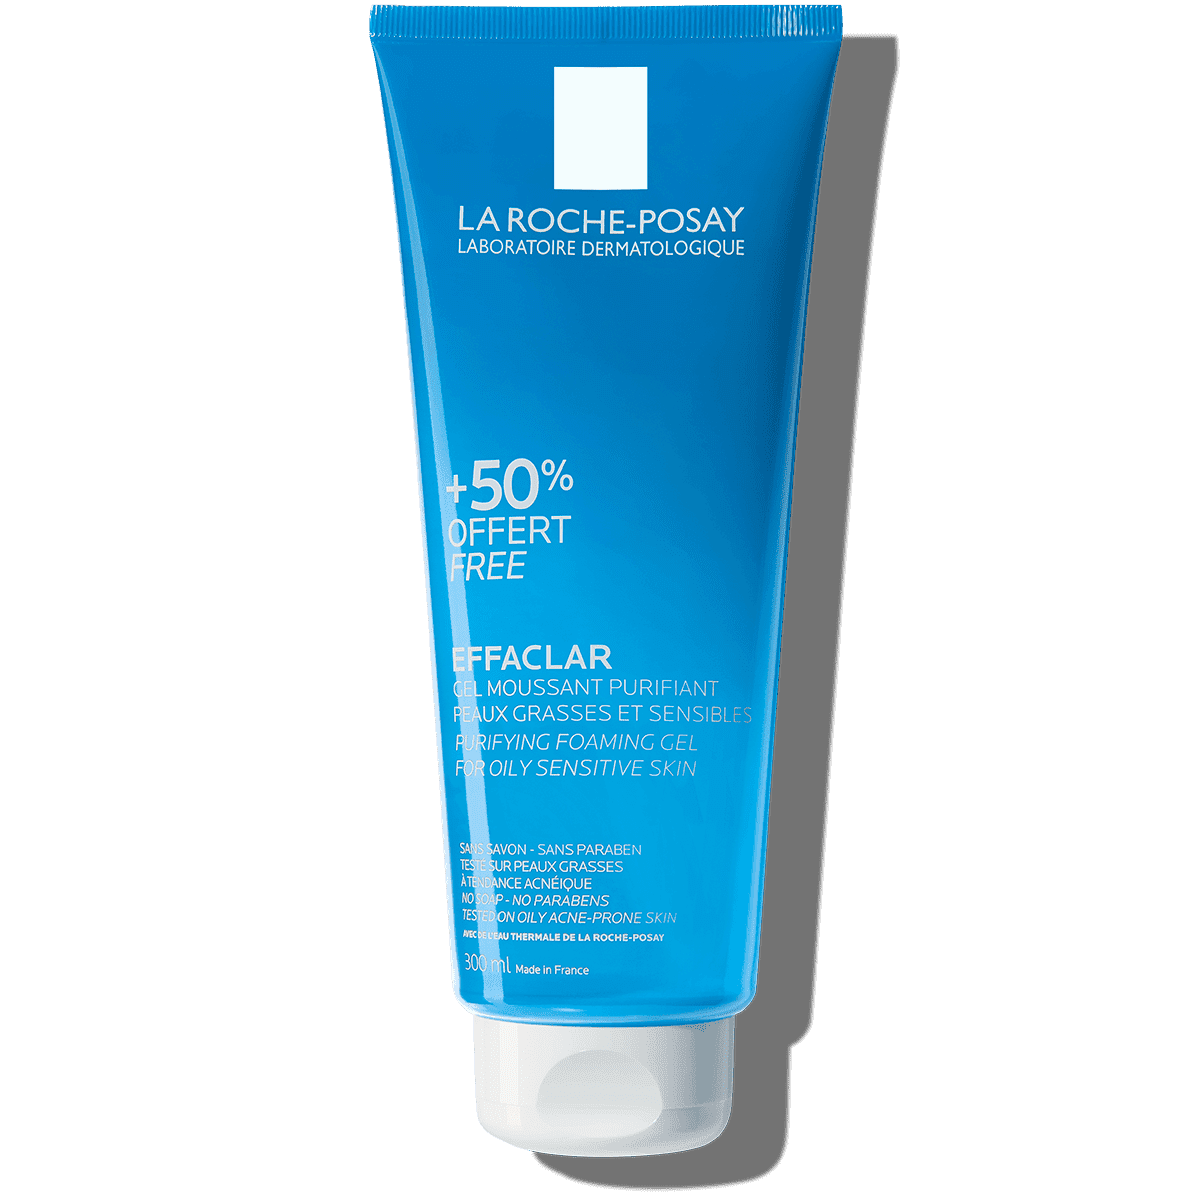 La Roche Posay Face Cleanser Effaclar Cleansing Foaming Gel 300ml 3337